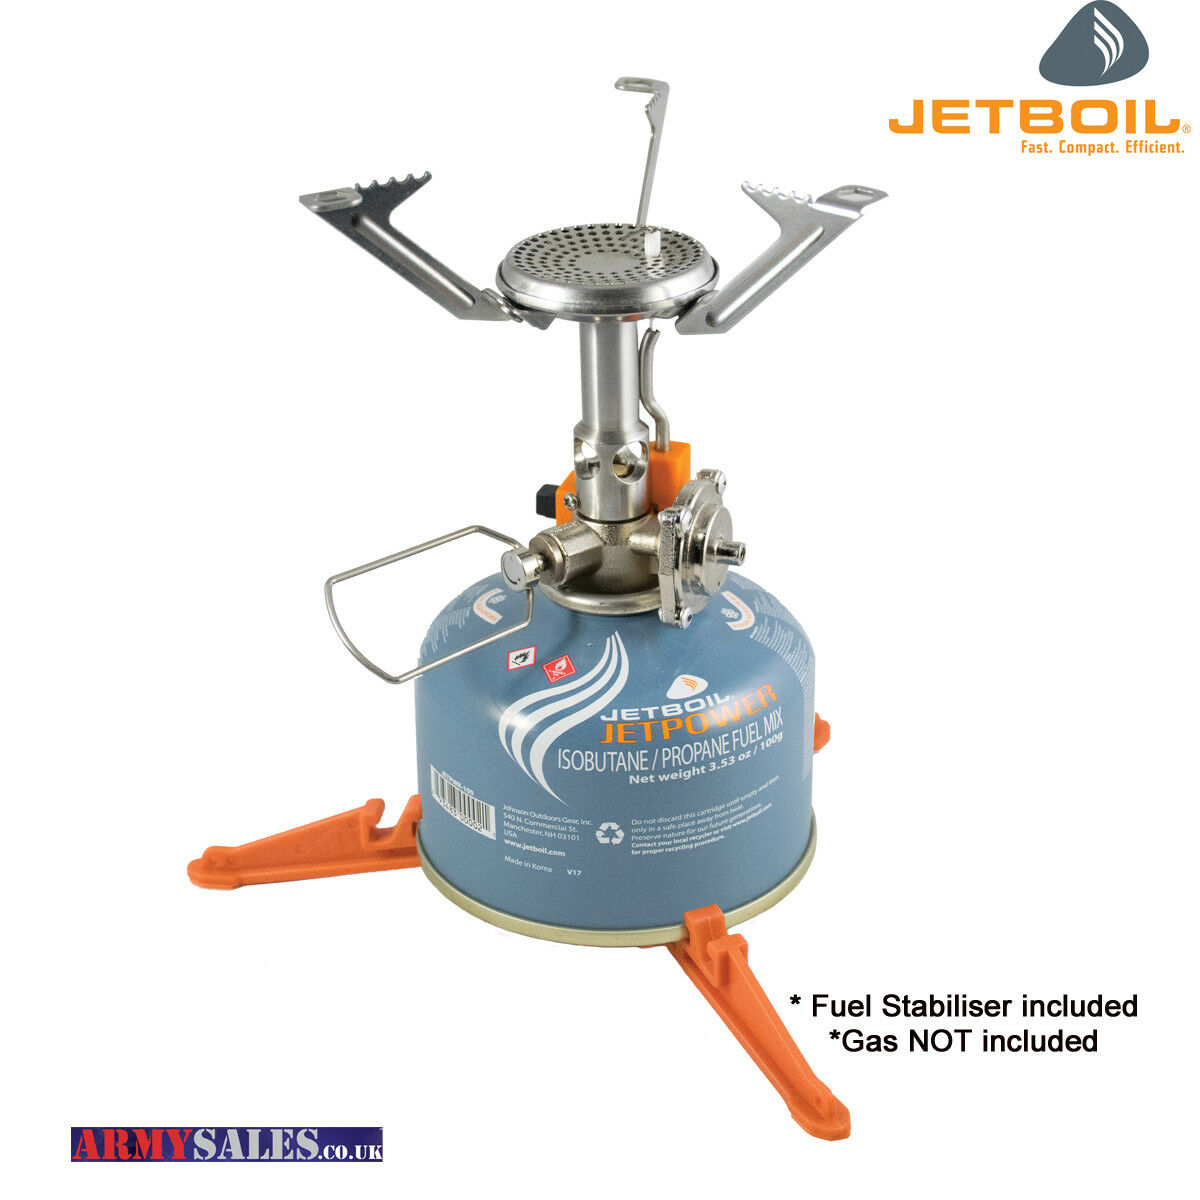 Jetboil MightyMo Compact Stove - Lightweight and Powerful Pocket Rocket Stove